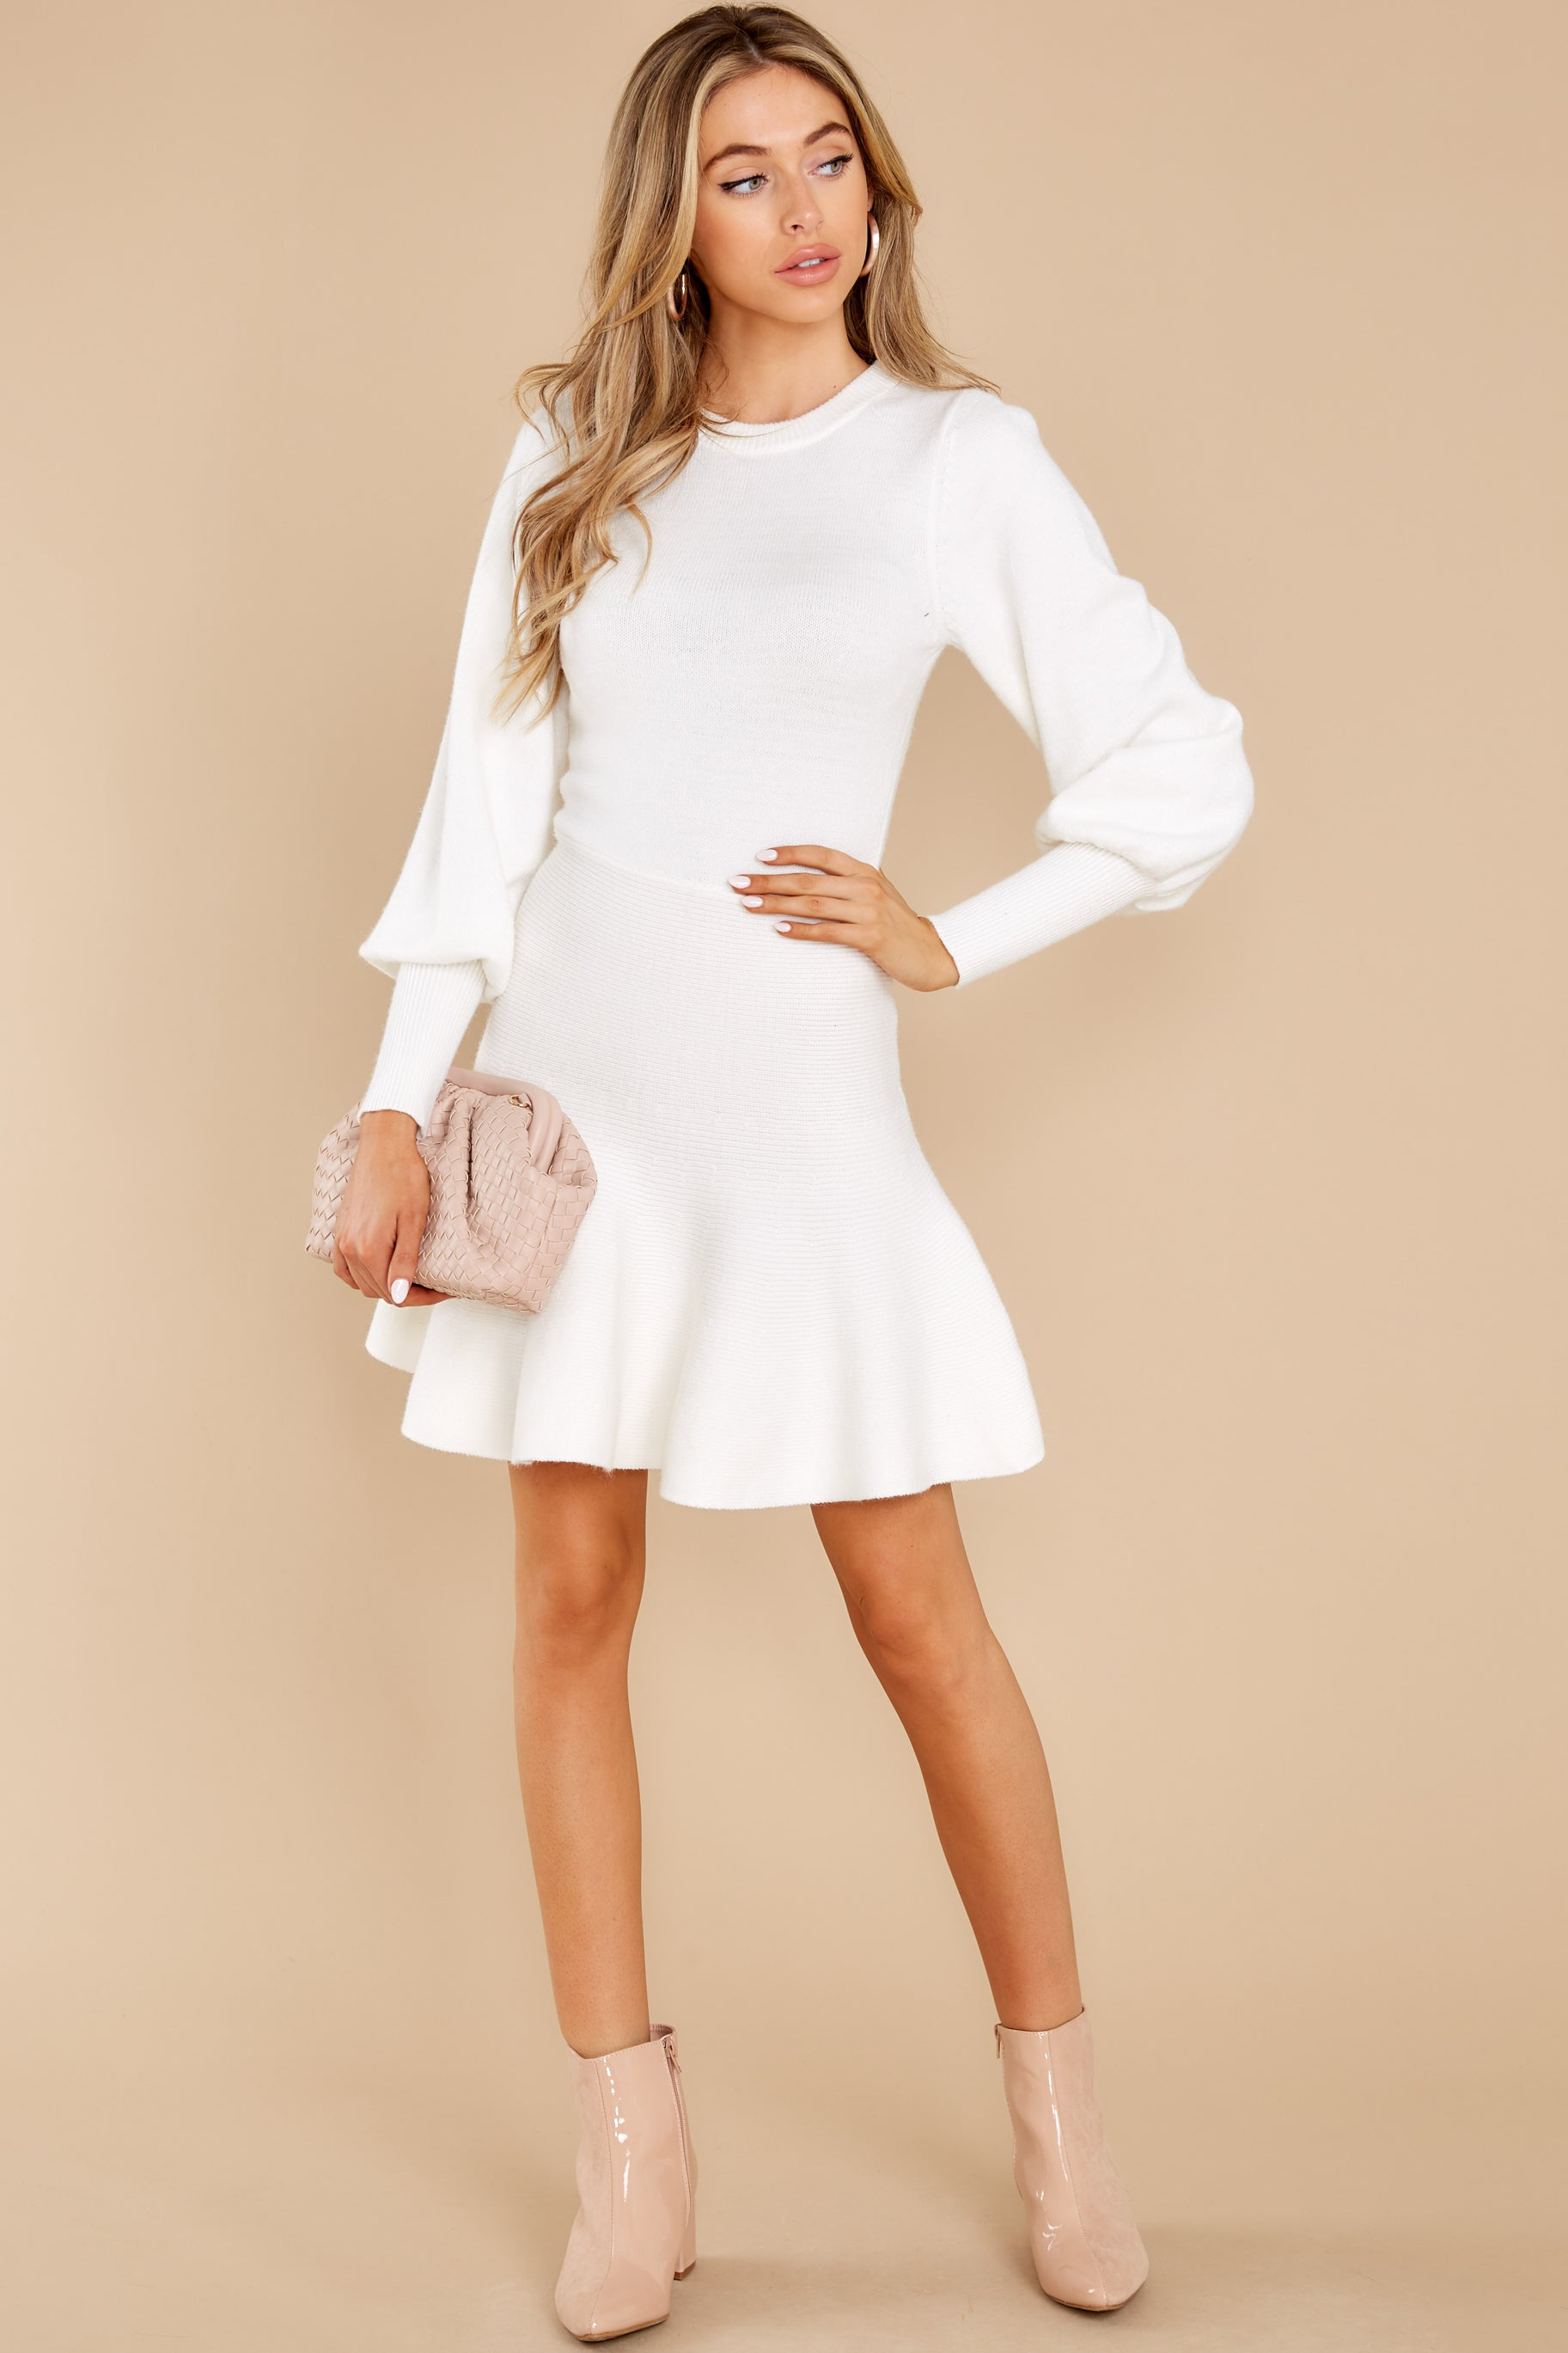 2 Into Me Into You White Sweater Dress at reddress.com